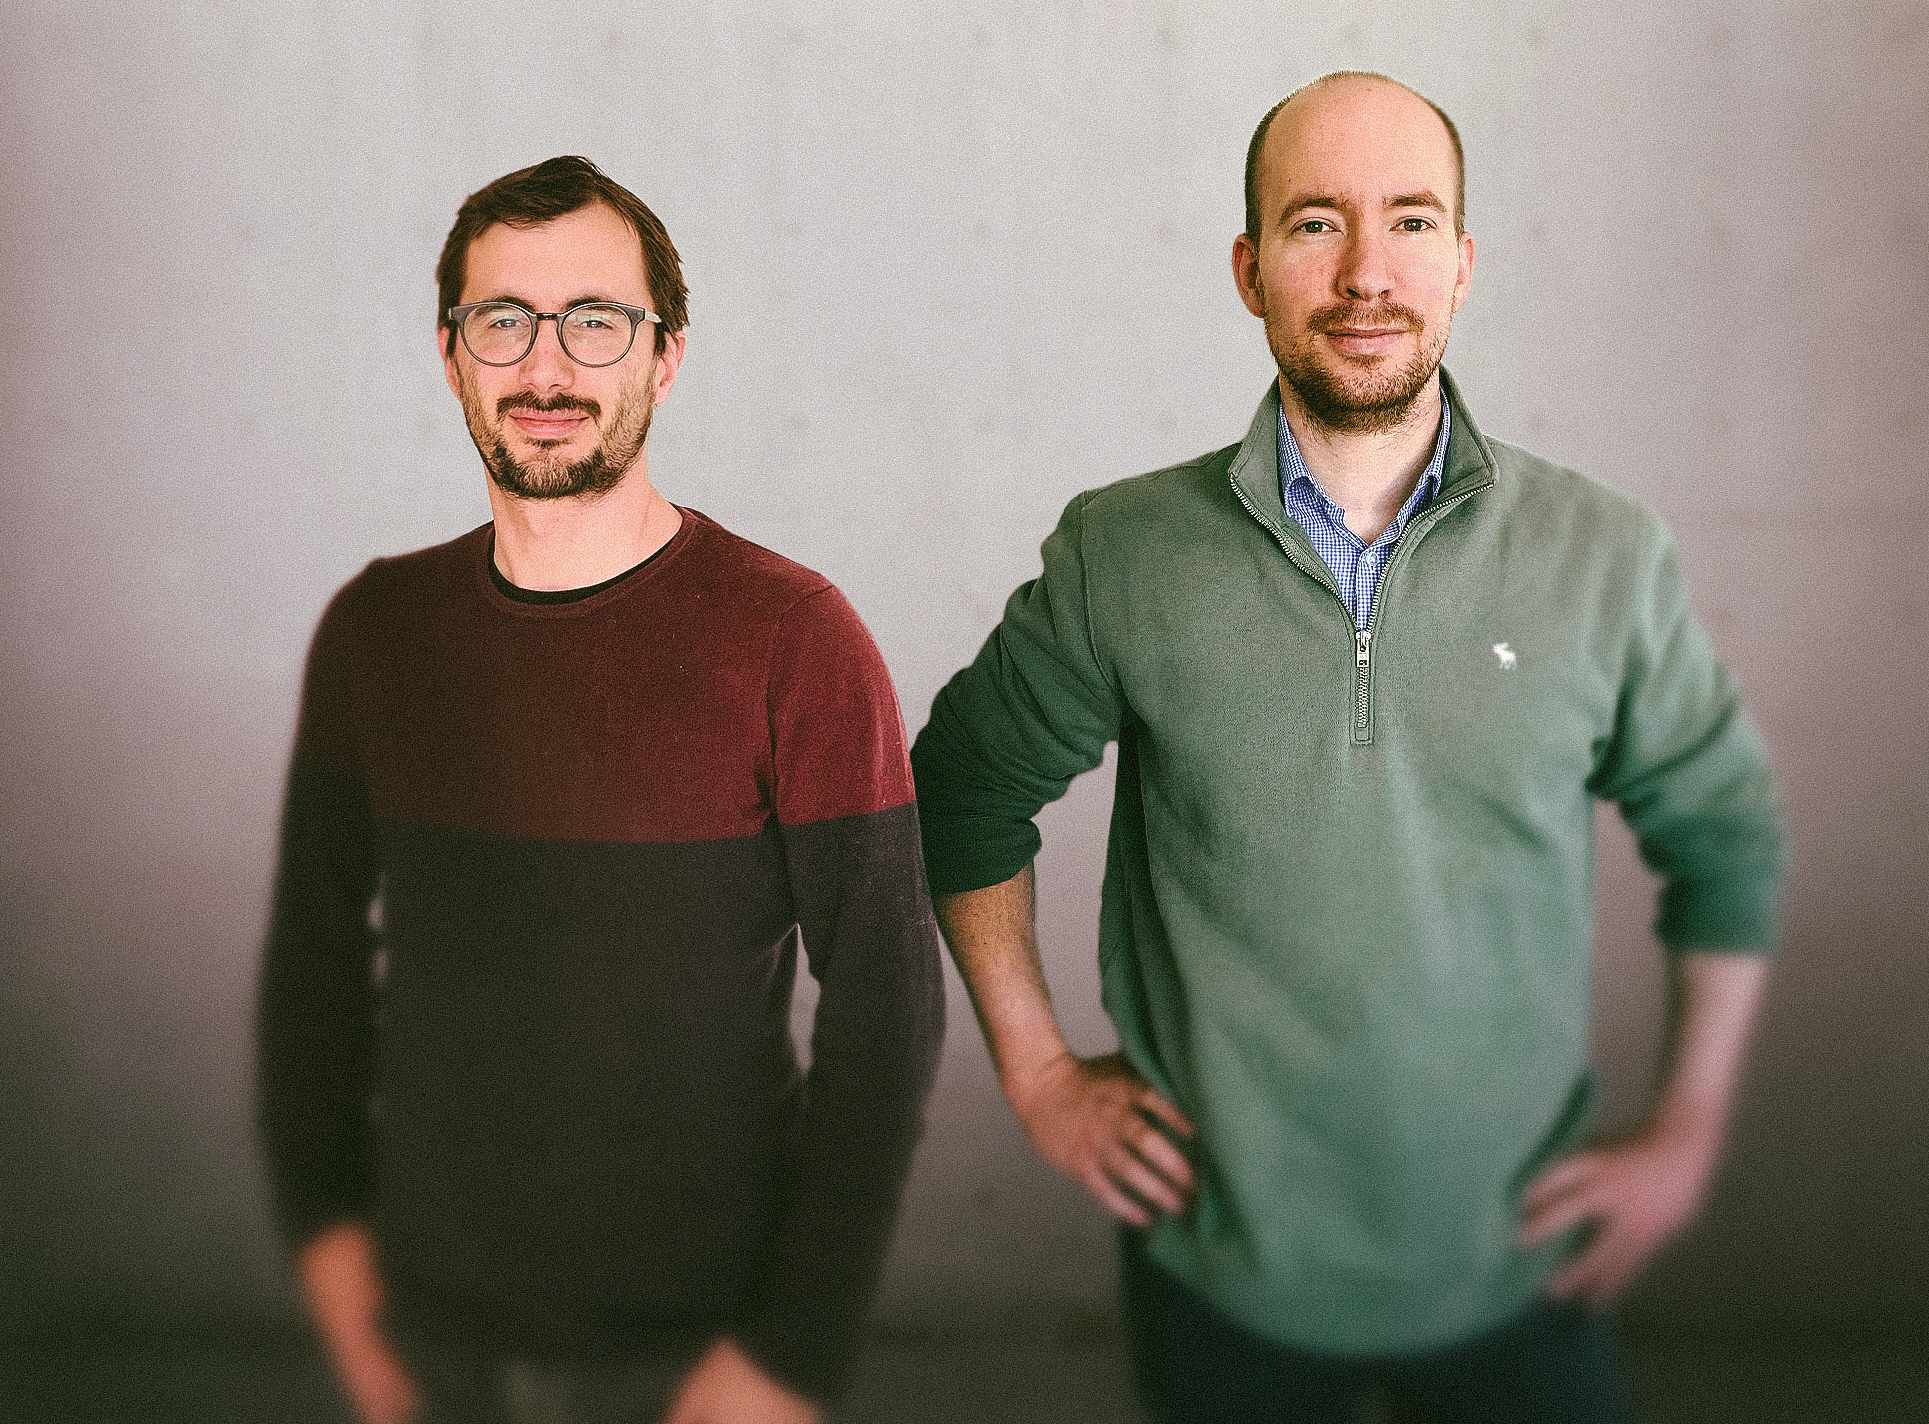 Stream raises $38M as its chat and activity feed APIs power communications for 1B users